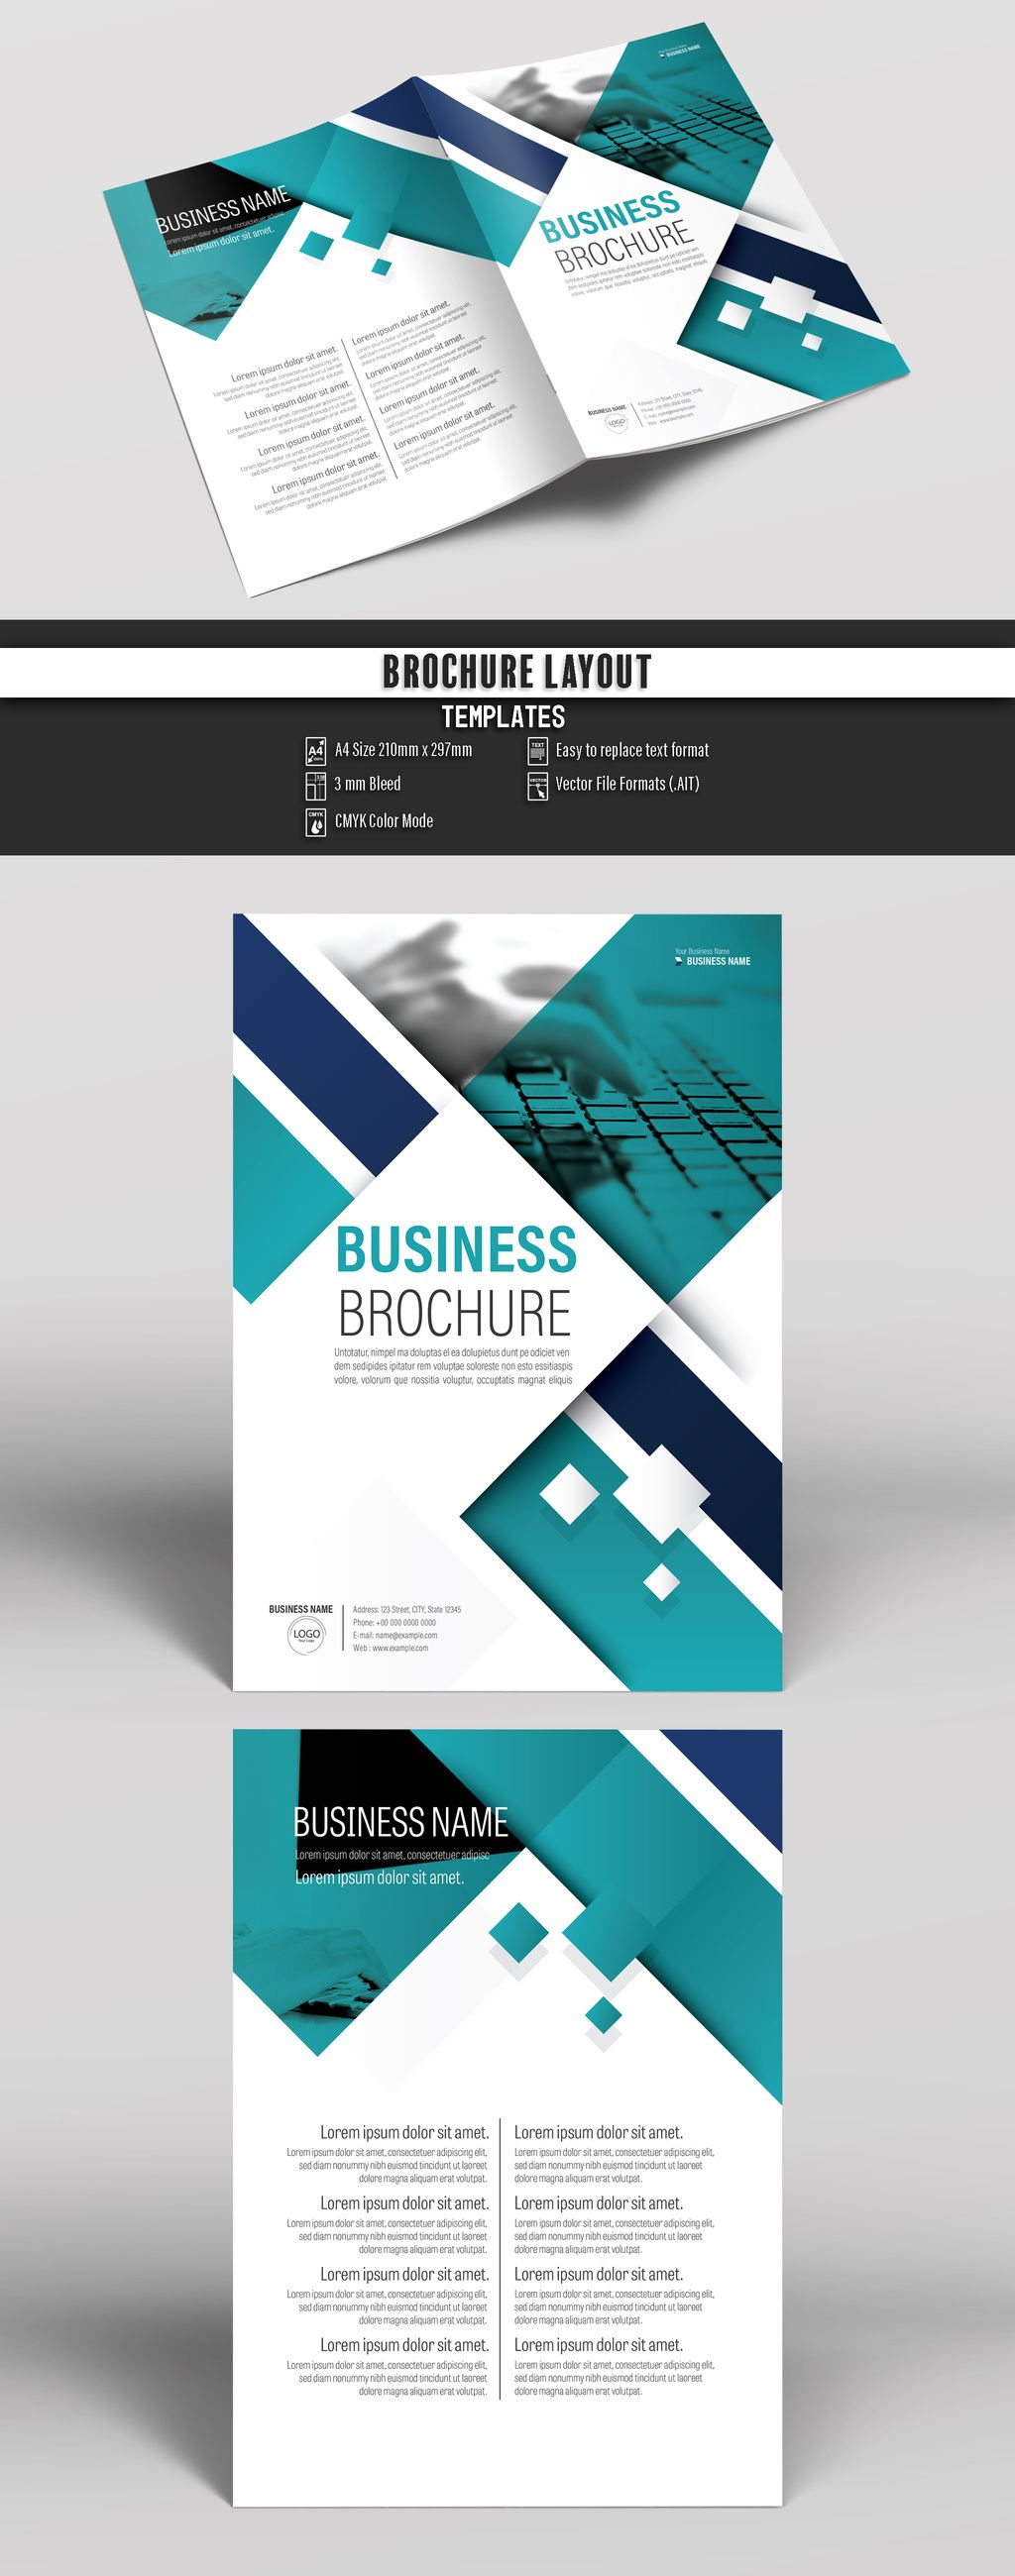 Brochure Cover Layout with Teal and Blue